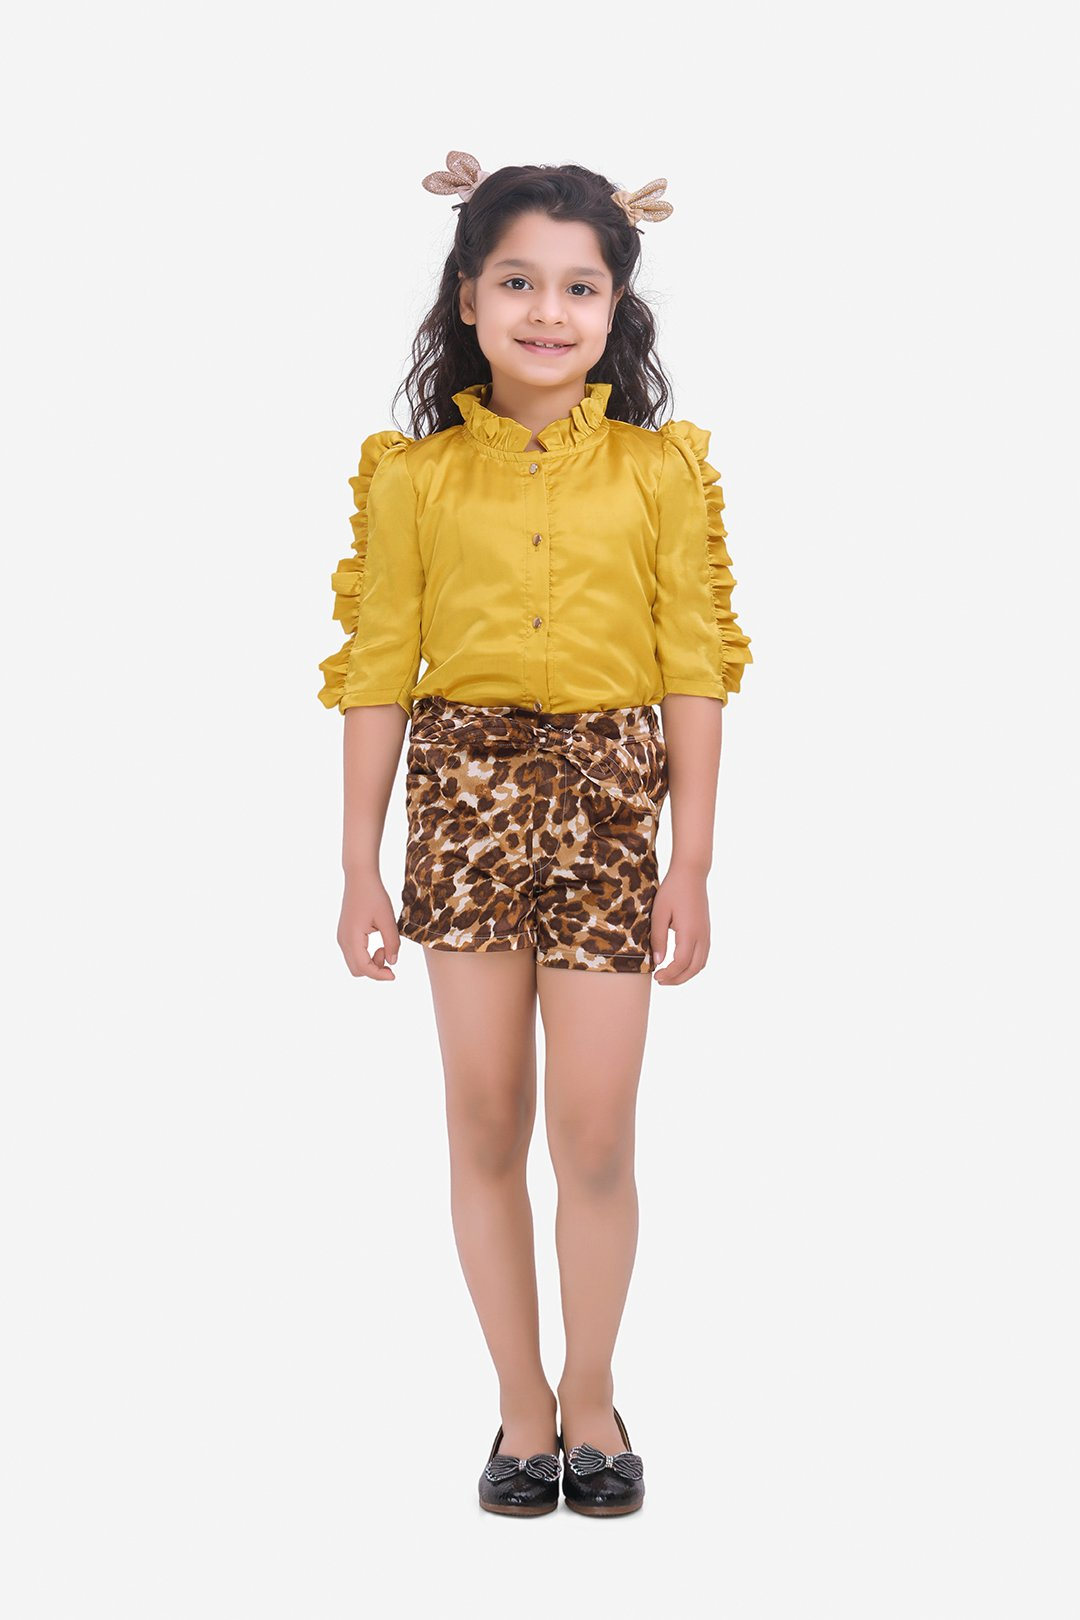 Fairies Forever Mustard Yellow to Pand Brown Shorts